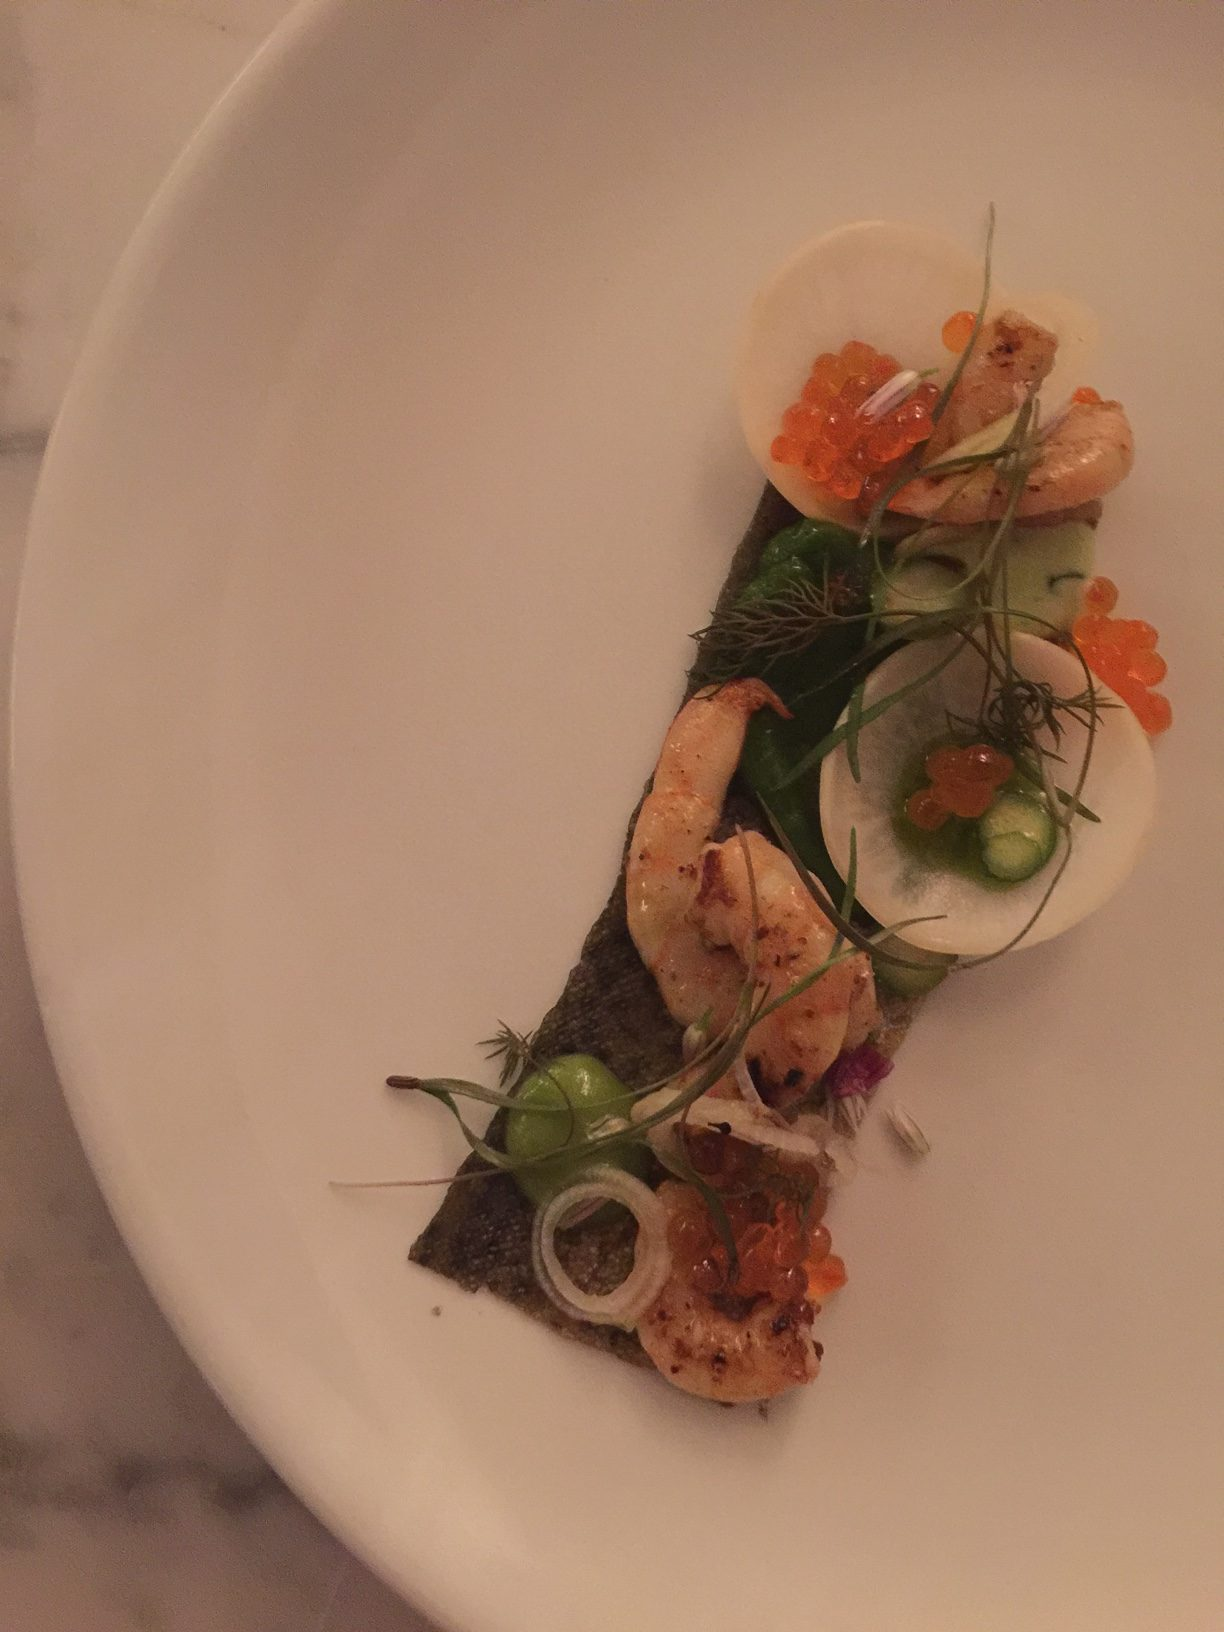 Shrimp, Trout Skin and Roe at The Finch Restaurant by Mad Hungry